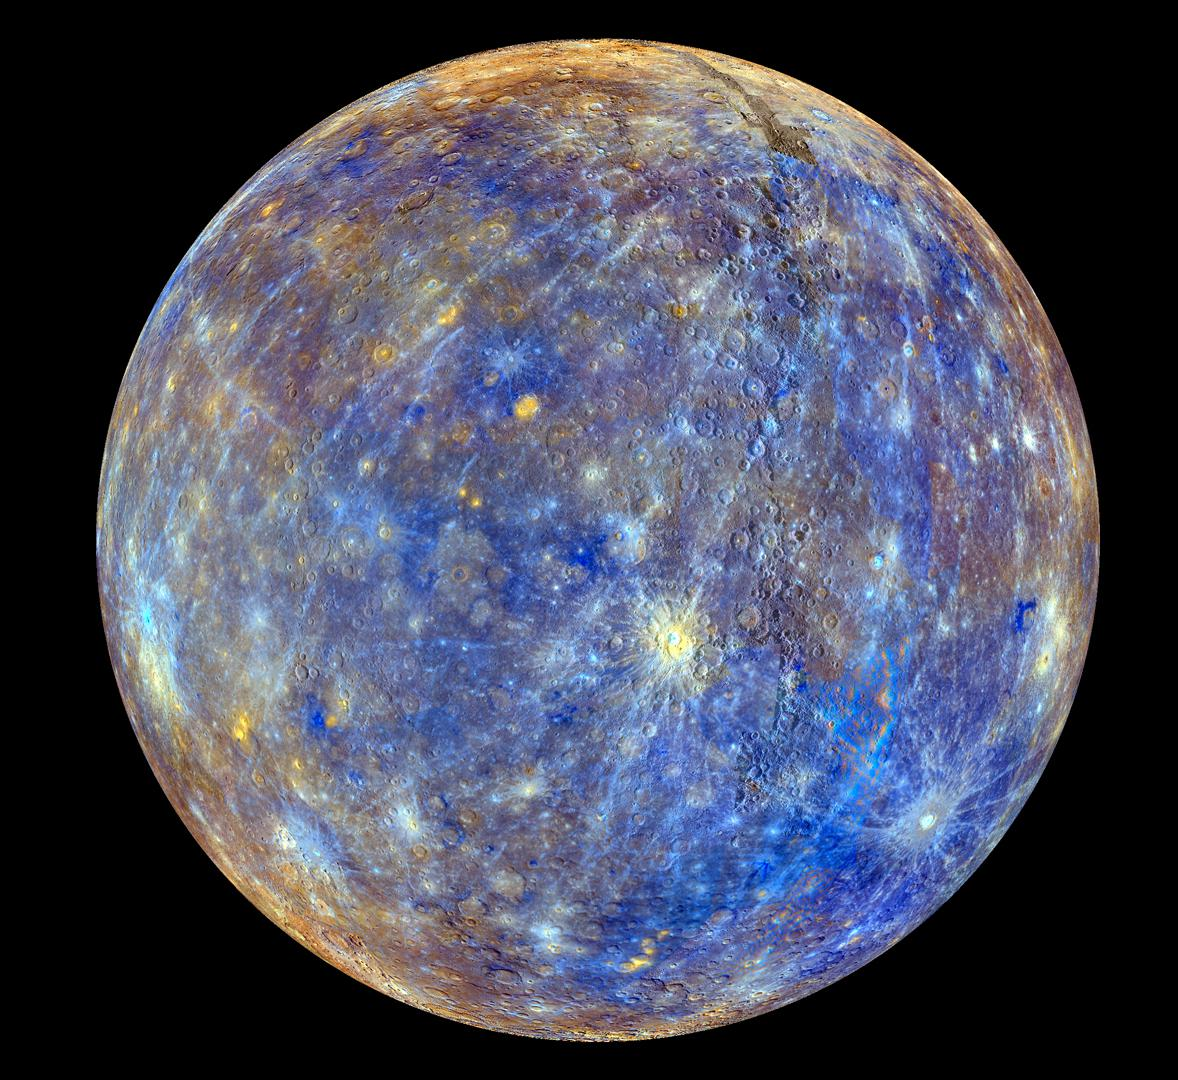 Mercury! NASA Mercury Messenger image via imgurvfA7gxI